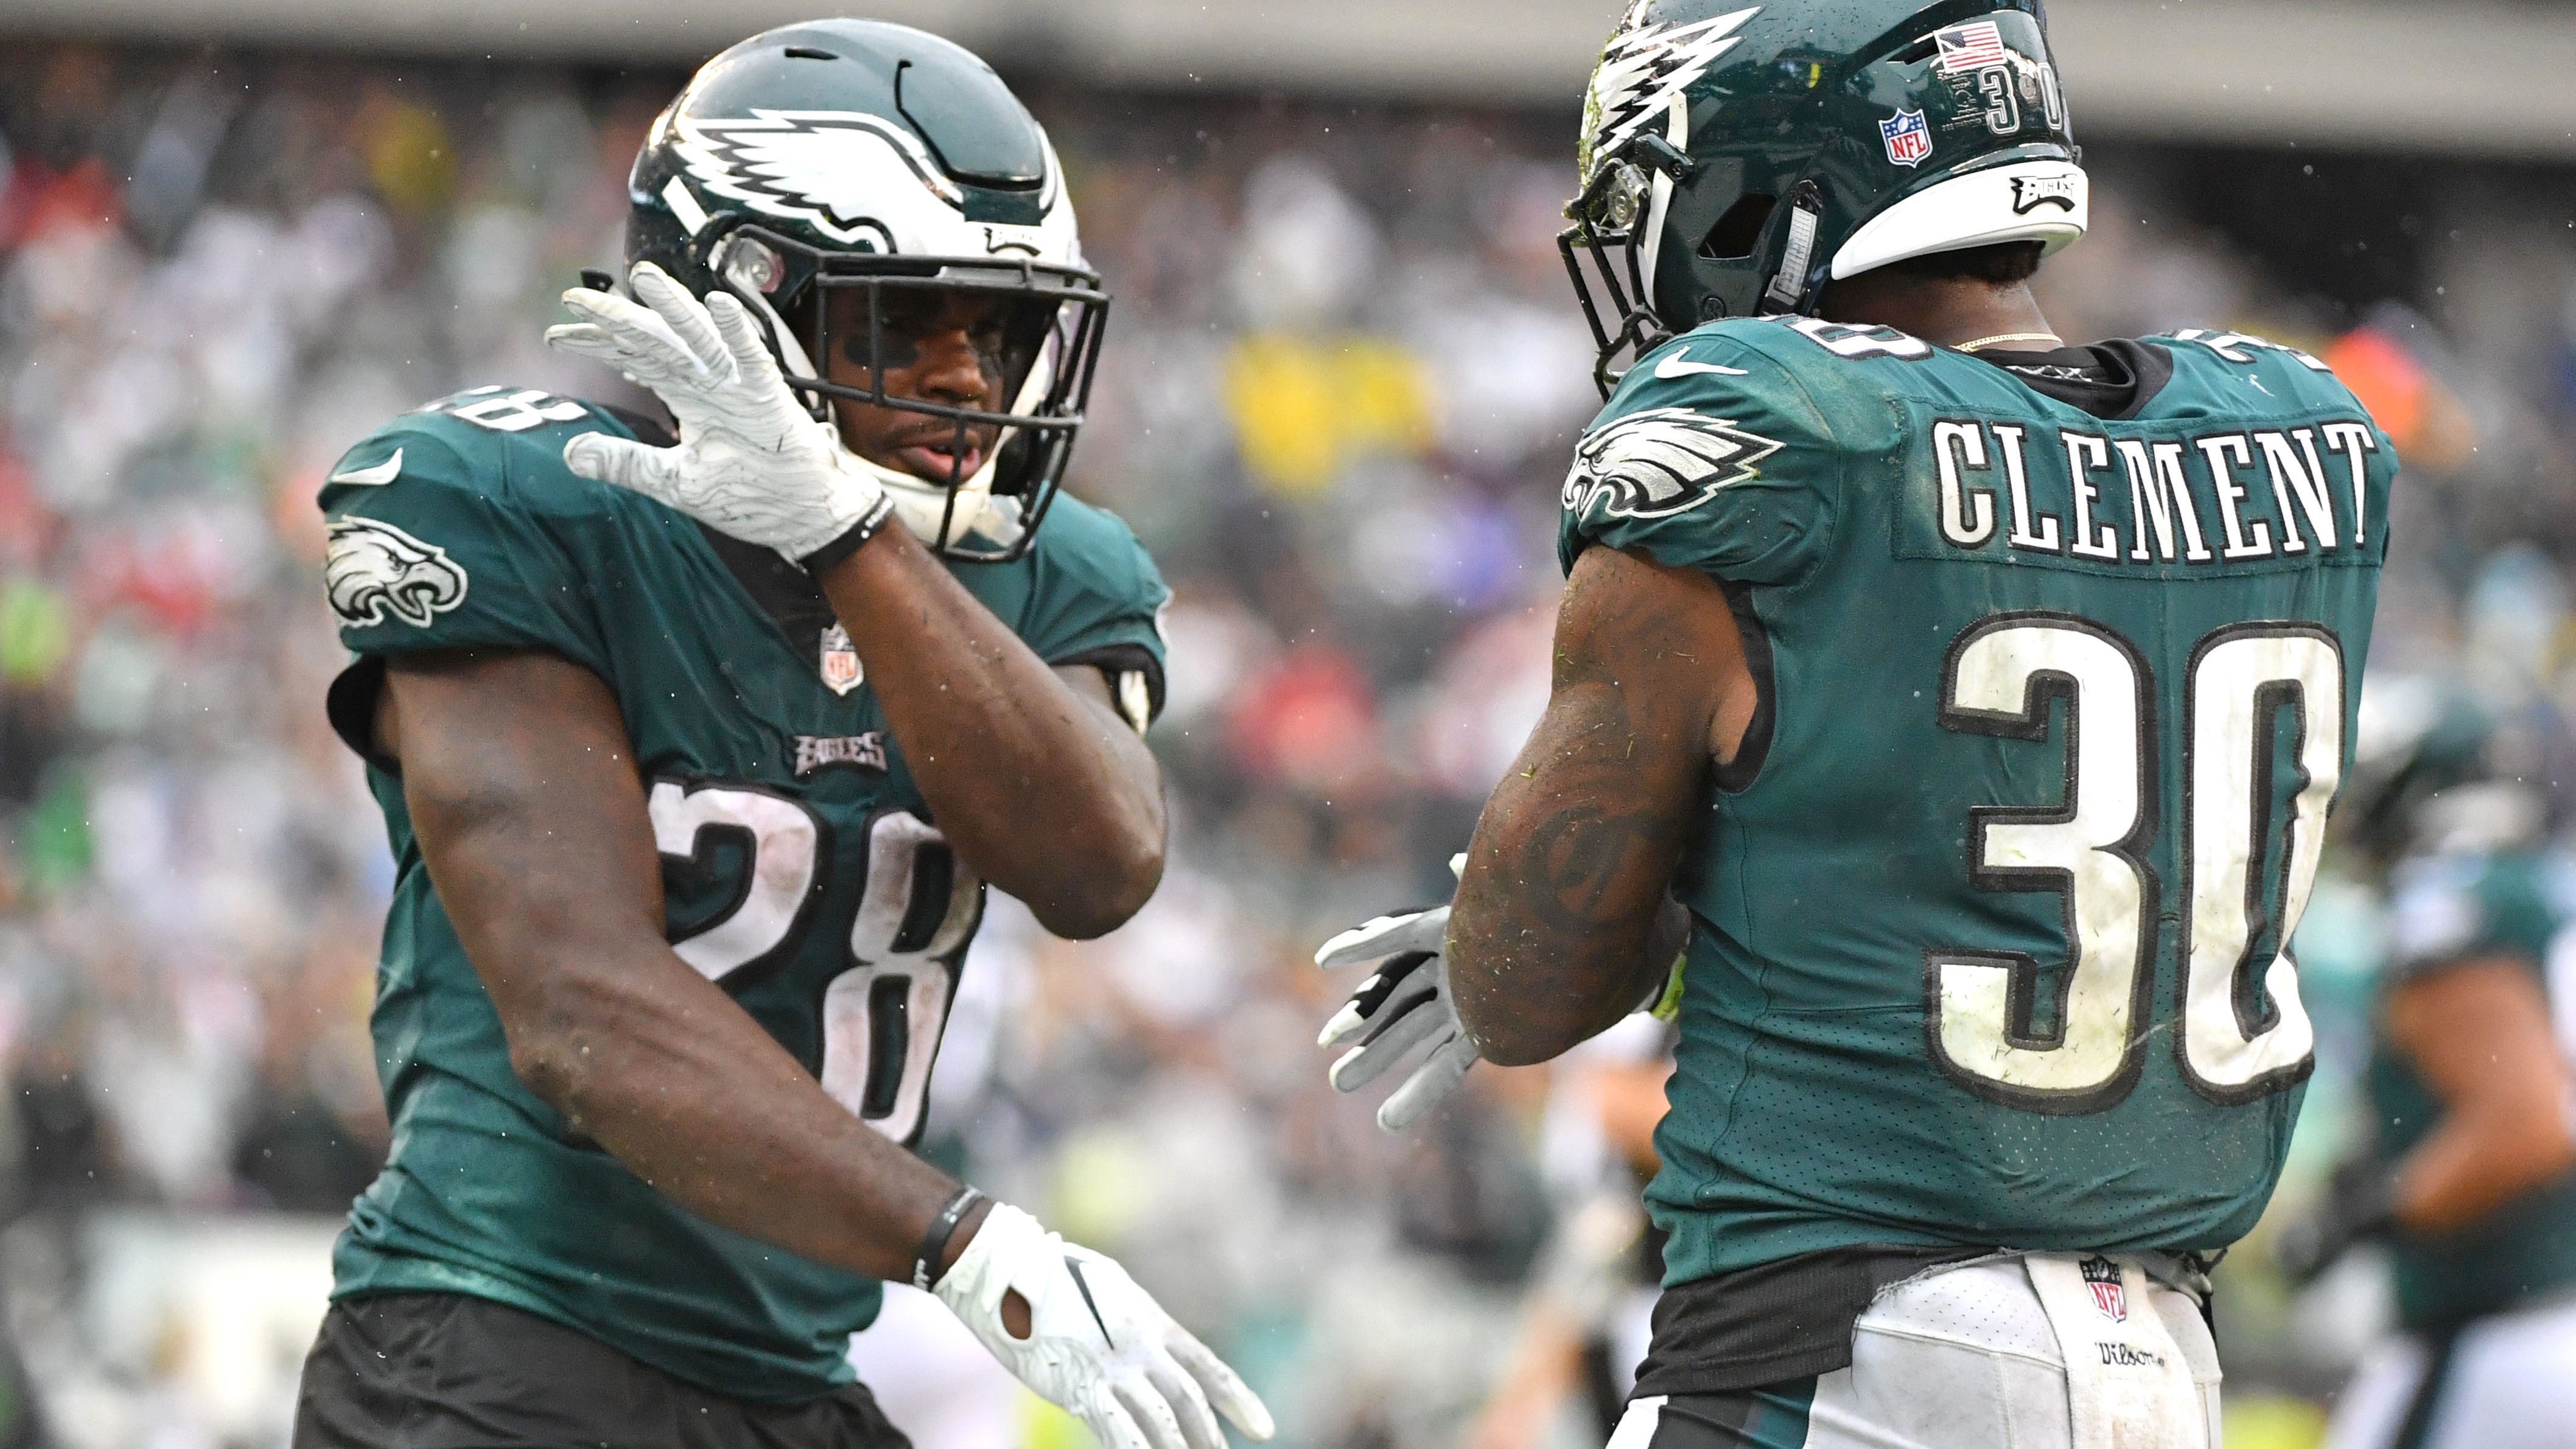 Corey Clement, Wendell Smallwood and Josh Adams combined for 142 yards and a touchdown as the Eagles had a balanced attack in Carson Wentz's return